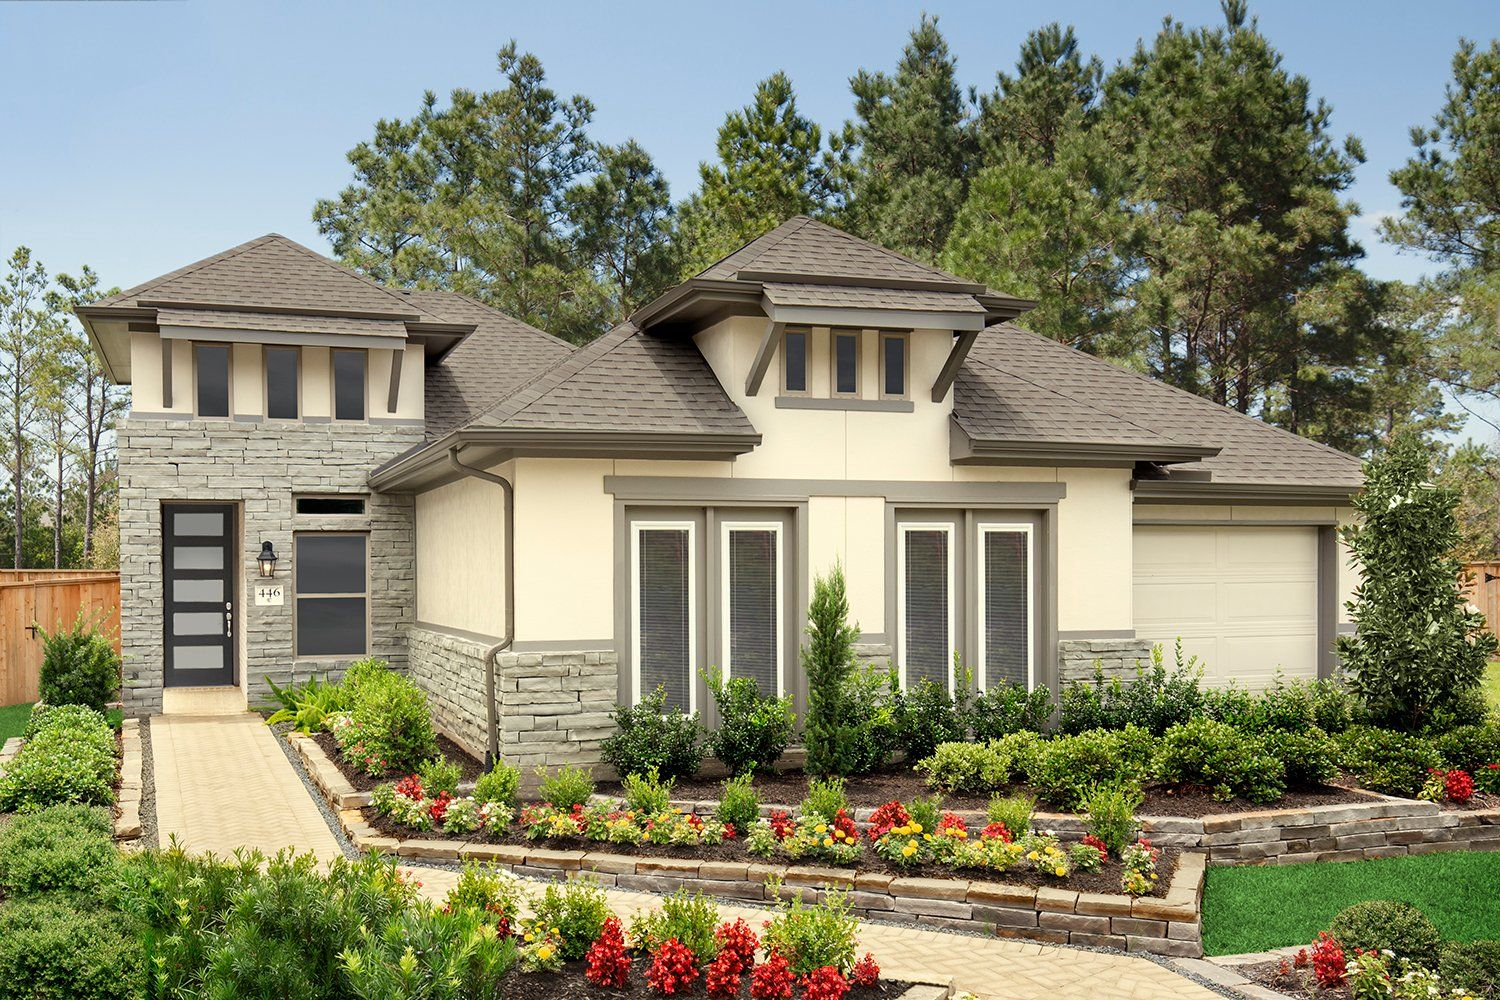 Elevation - The Groves (4270 Plan)